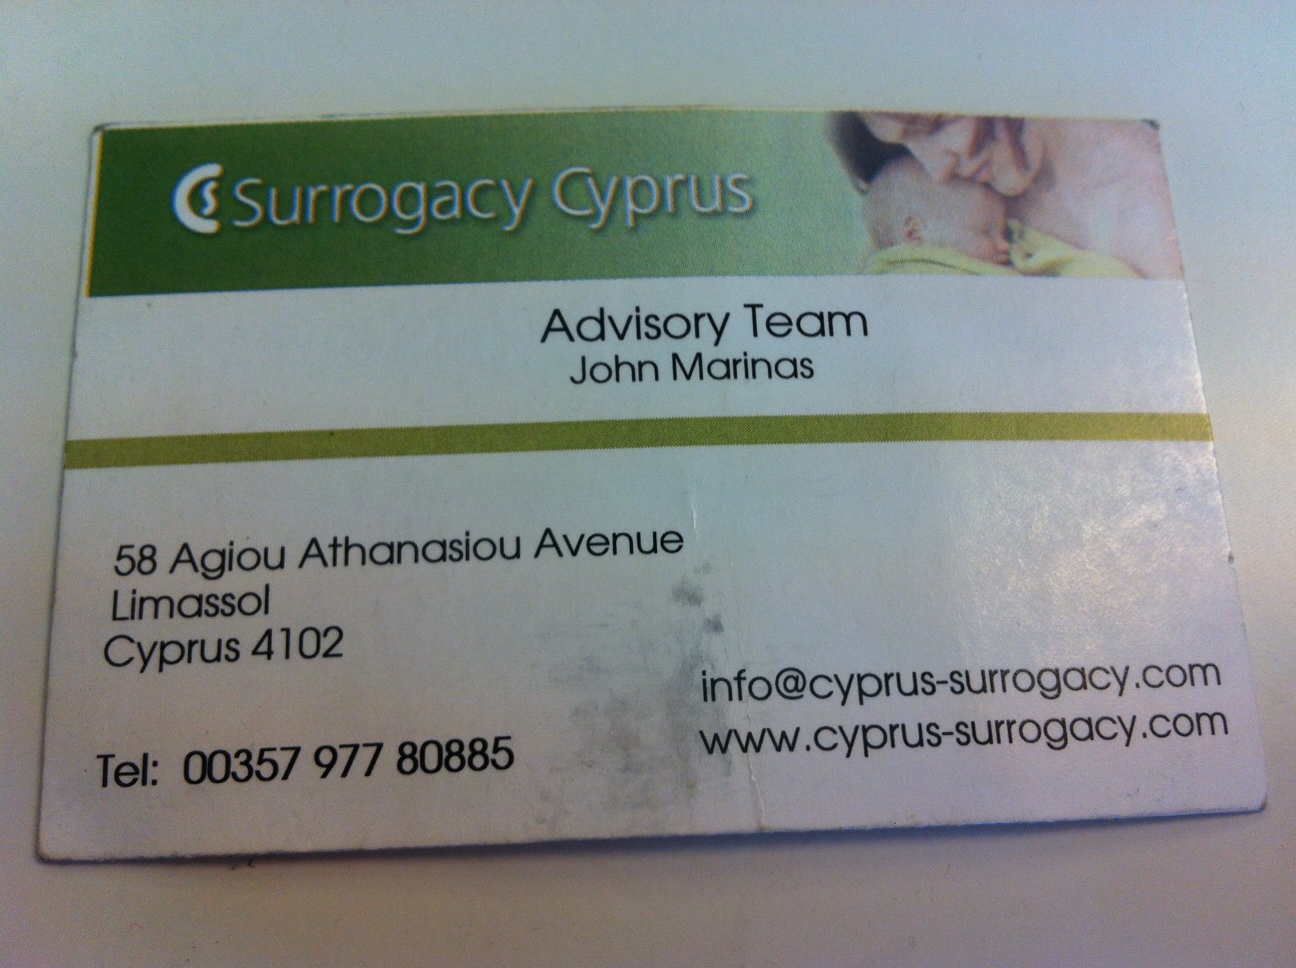 Cyprus surrogacy both associated with cyprus surrogacy the first man introduced himself as john marinas and gave me this business card the other man introduced himself as reheart Image collections